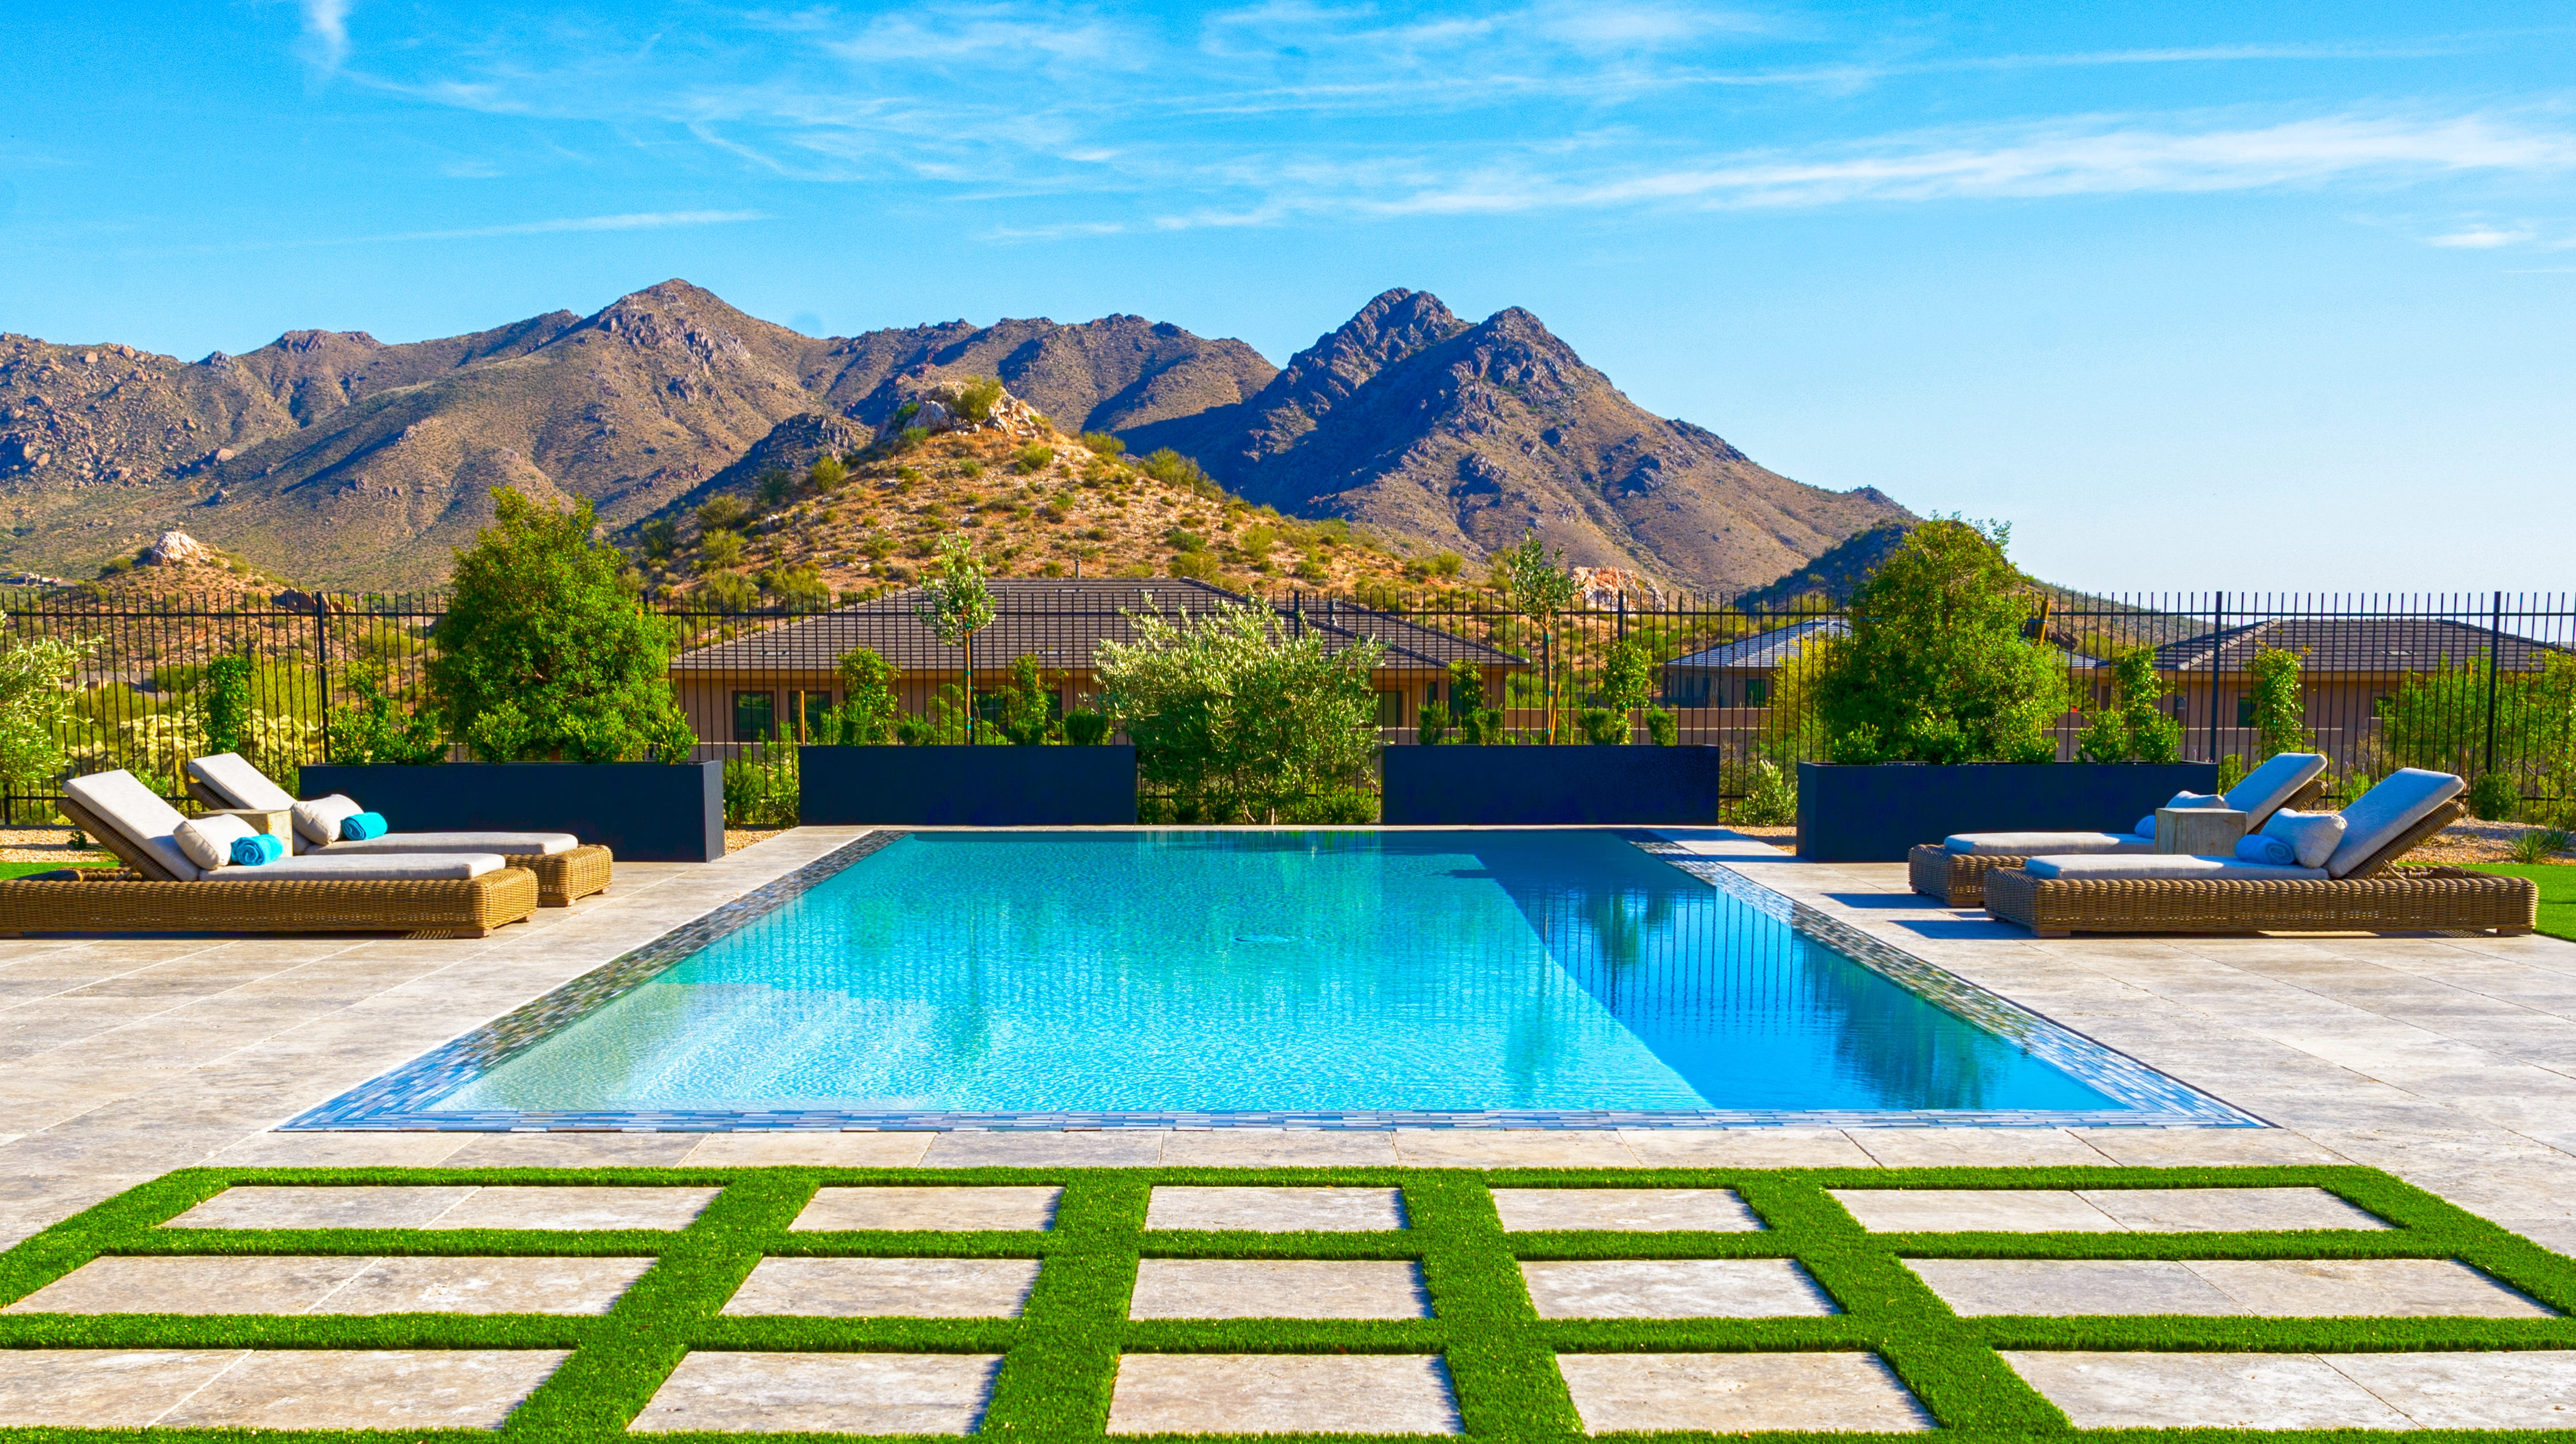 scottsdale house has one of the 'world's greatest pools'